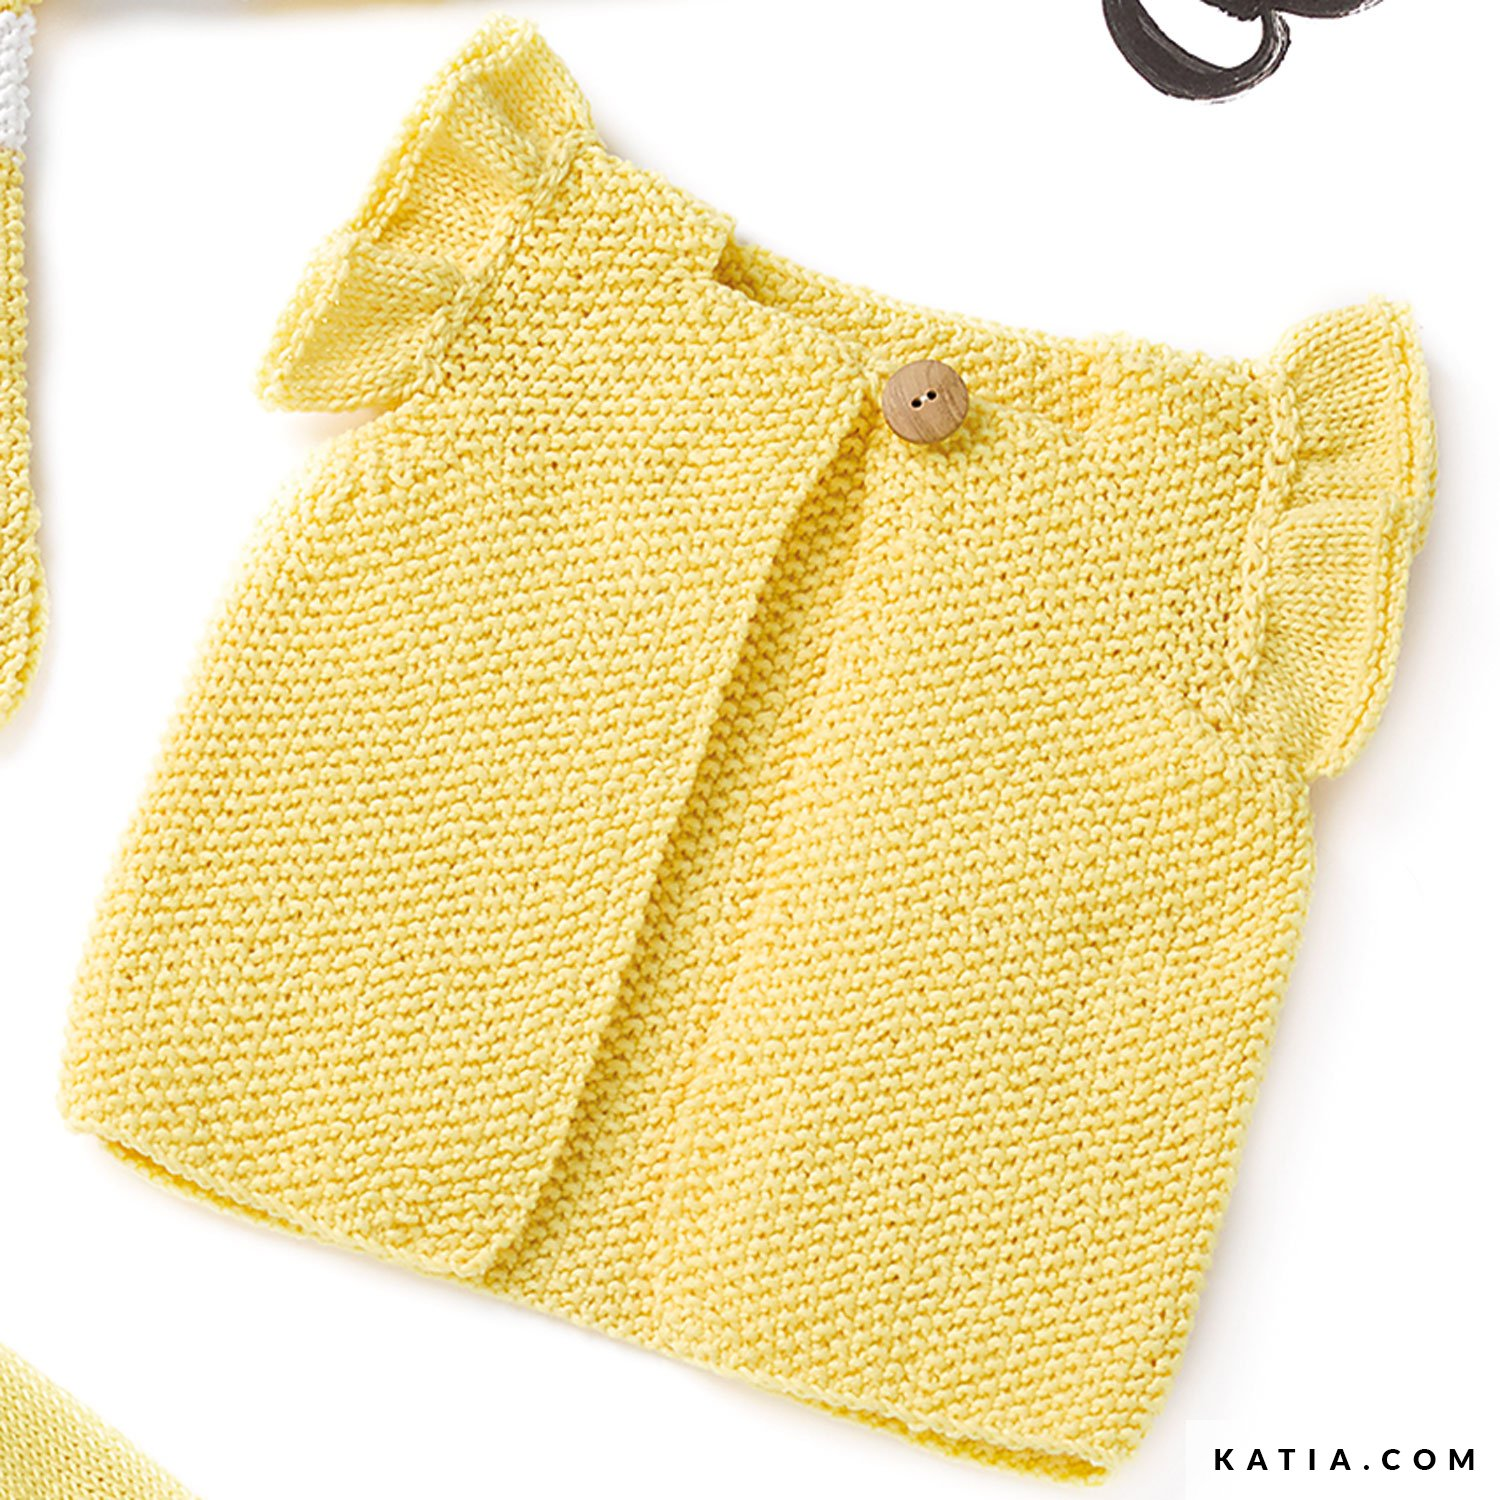 Not the finished items Baby DK Knitting Pattern KINGCOLE 5141 sizes 18-24